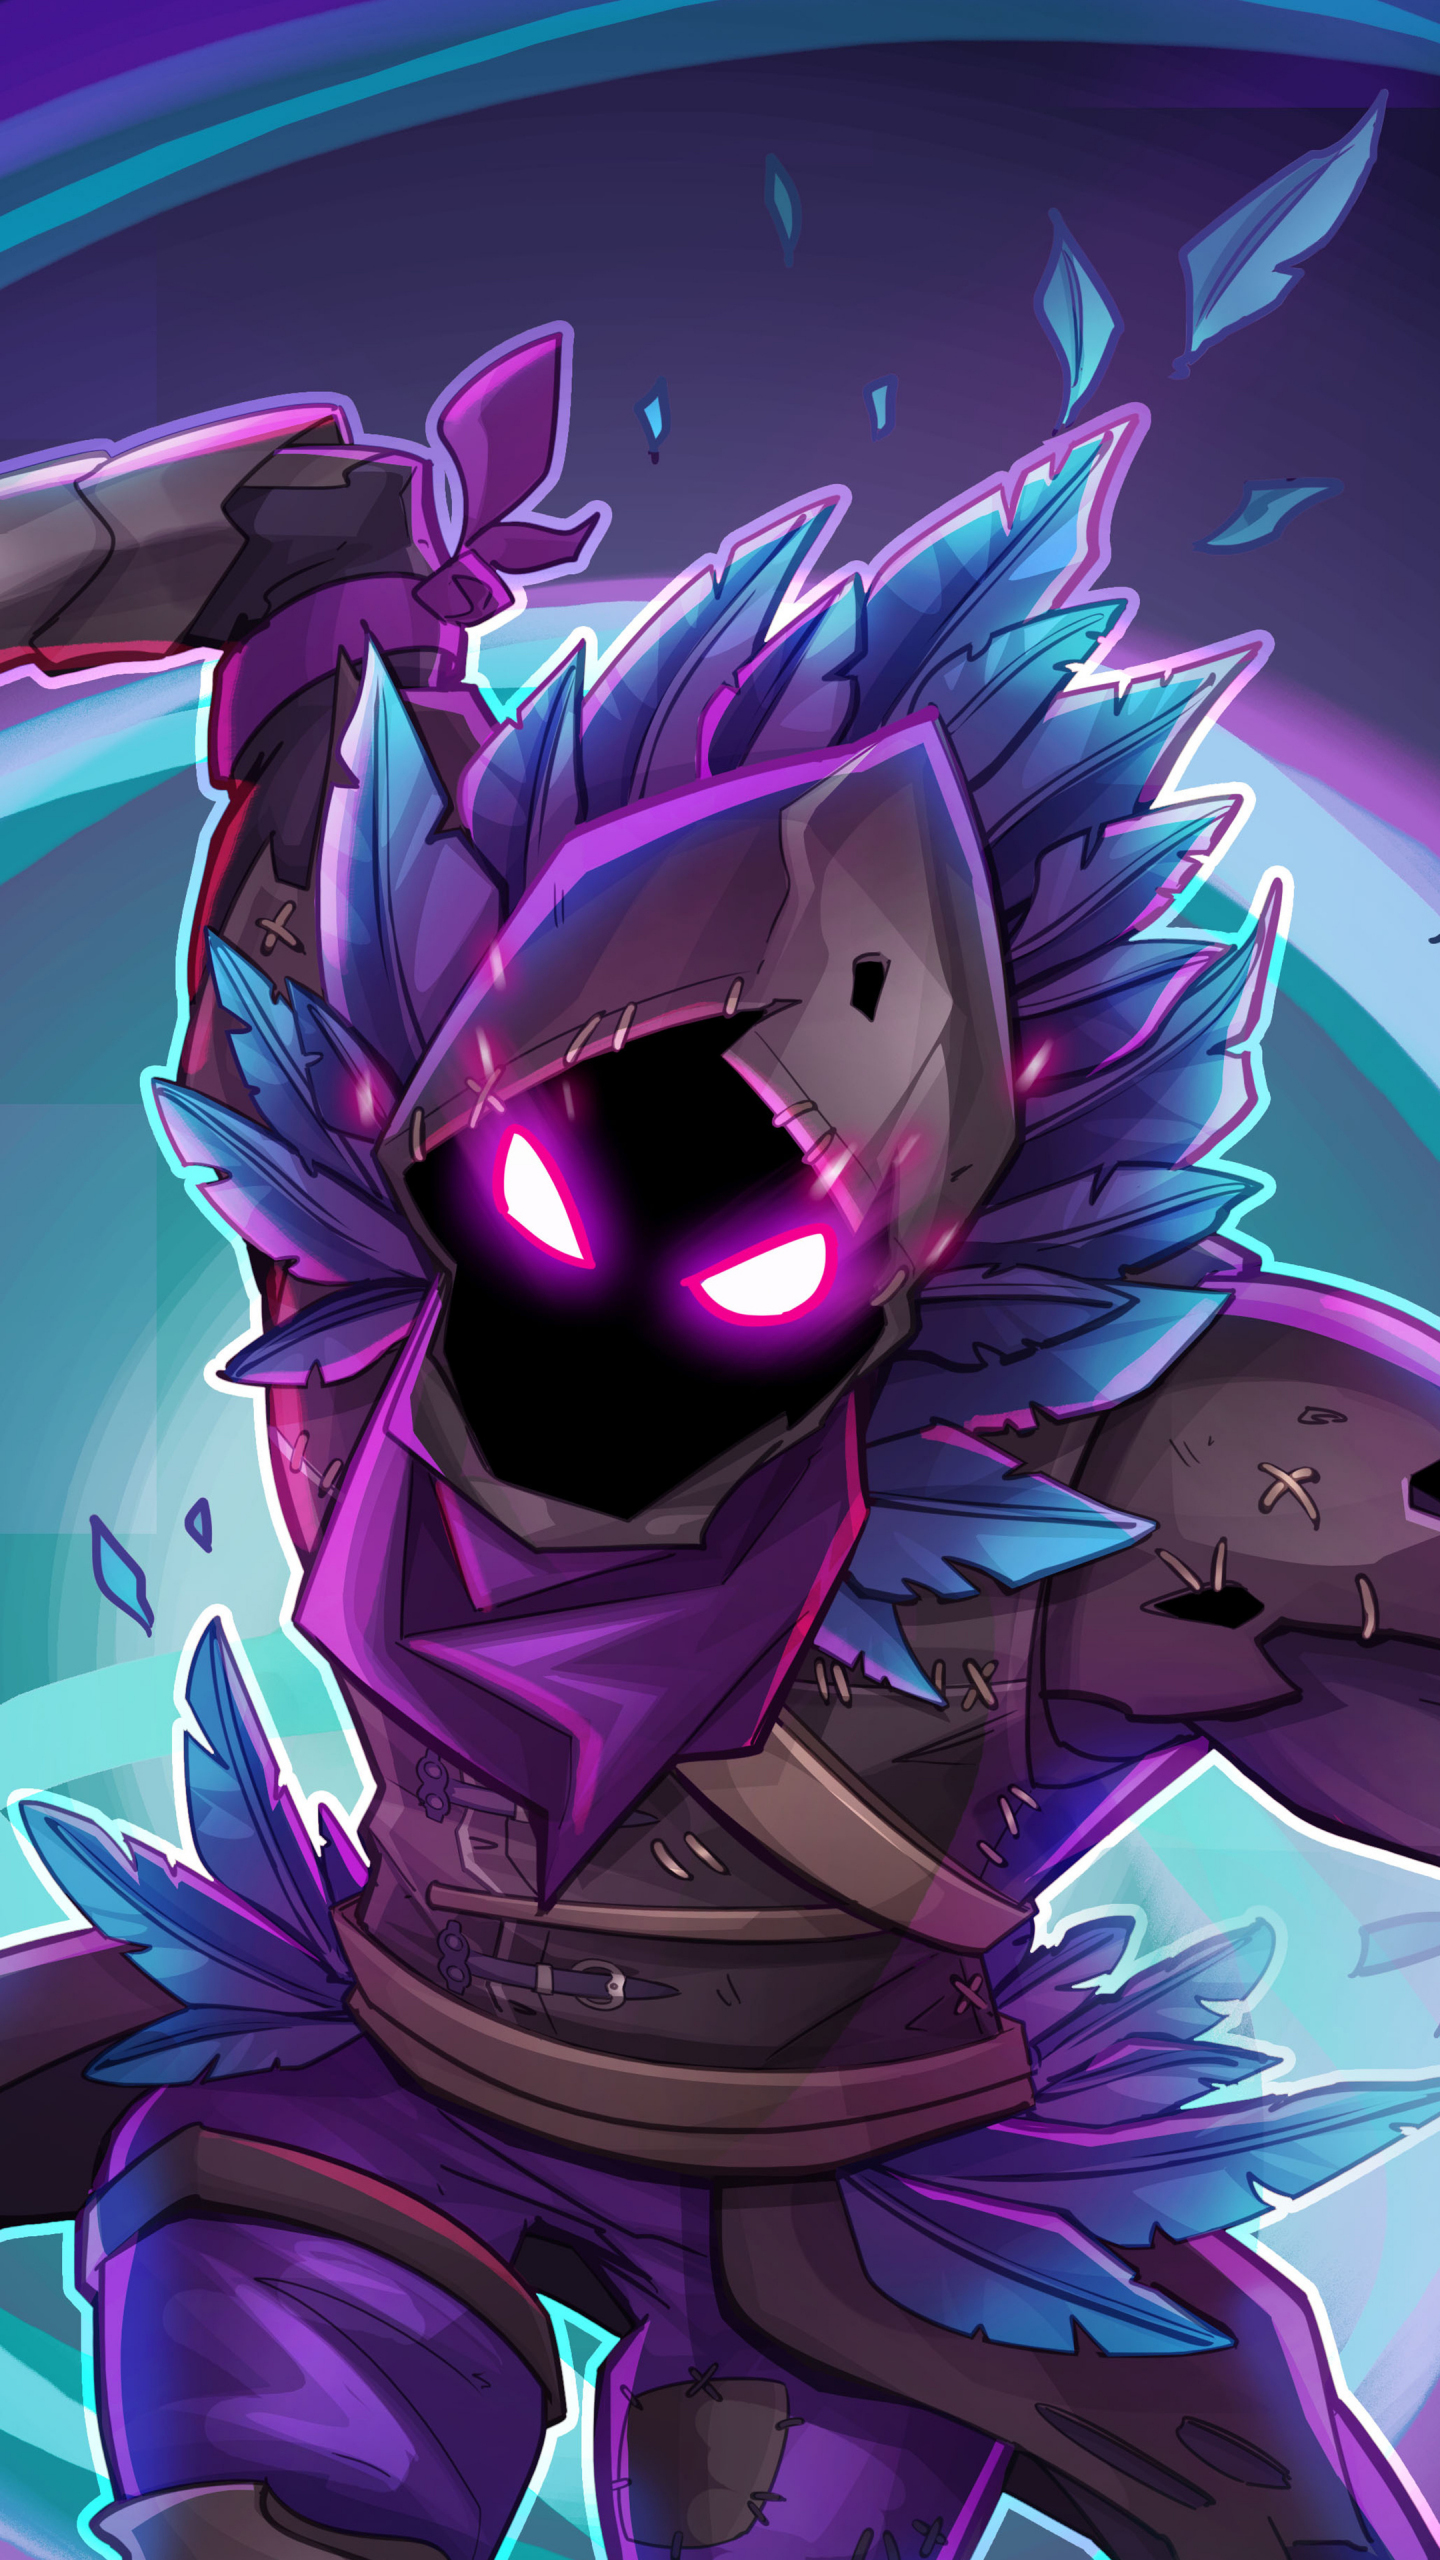 raven fortnite battle royale creature game 1440x2560 wallpaper - is fortnite available on samsung s6